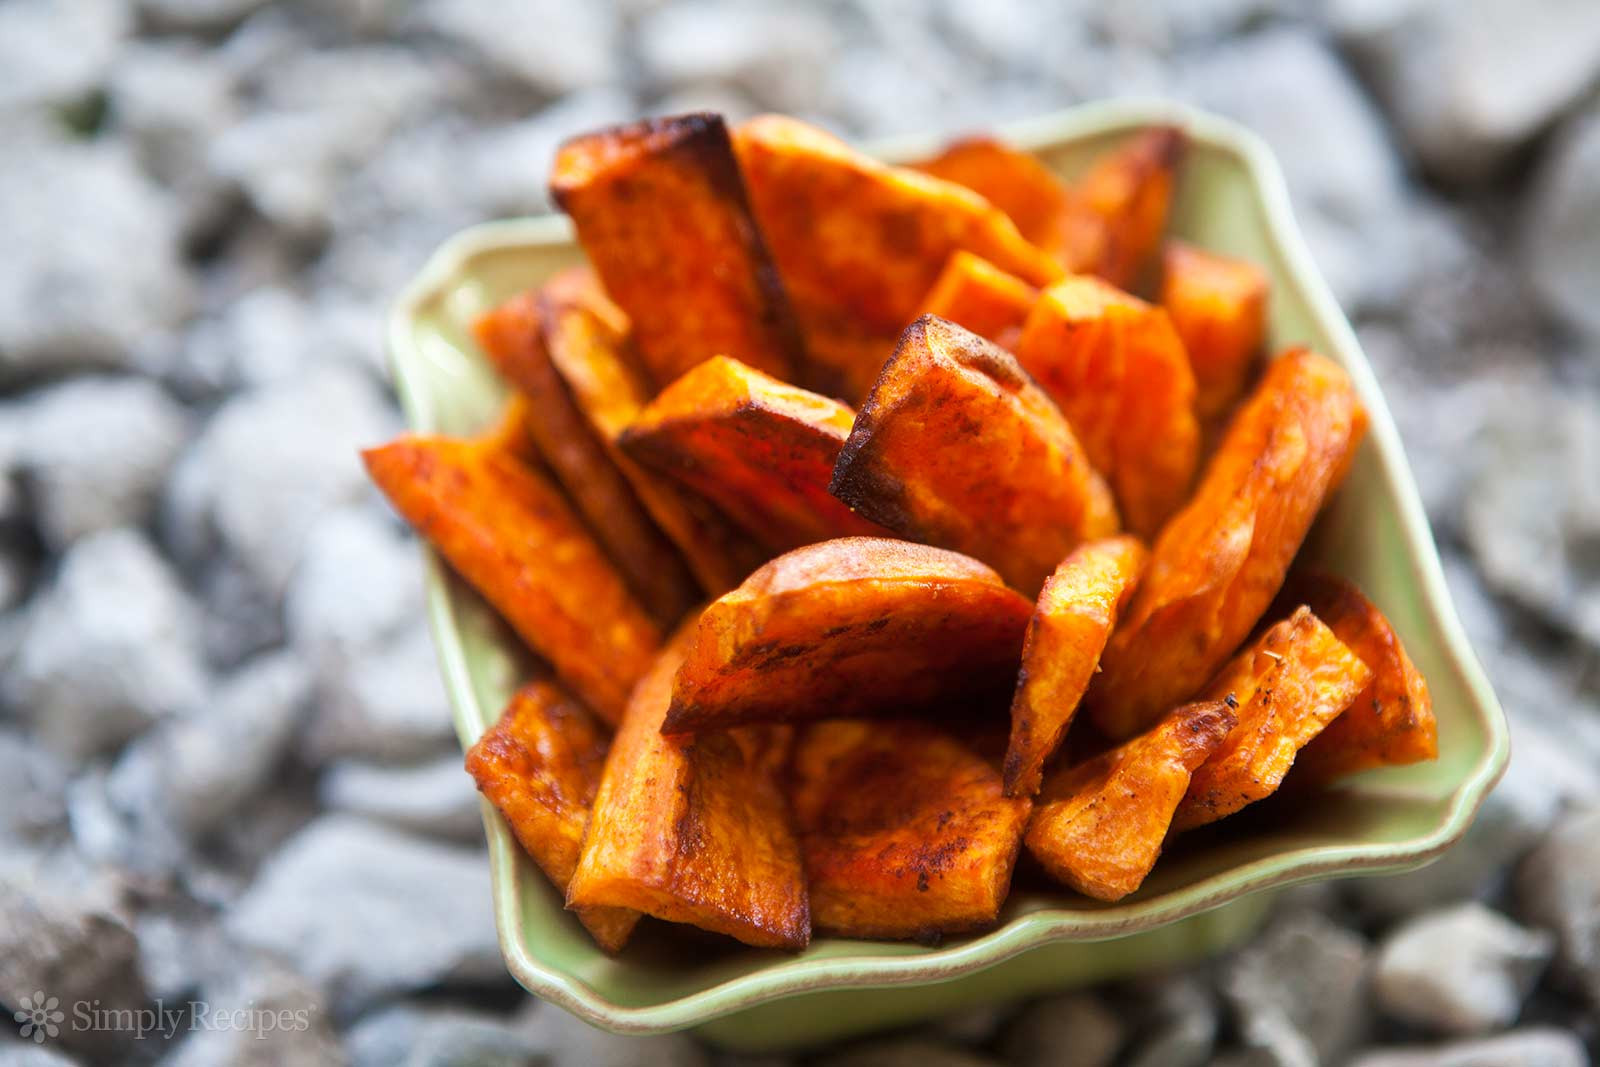 Healthy Oven Roasted Sweet Potatoes  Oven Baked Sweet Potato Fries Recipe